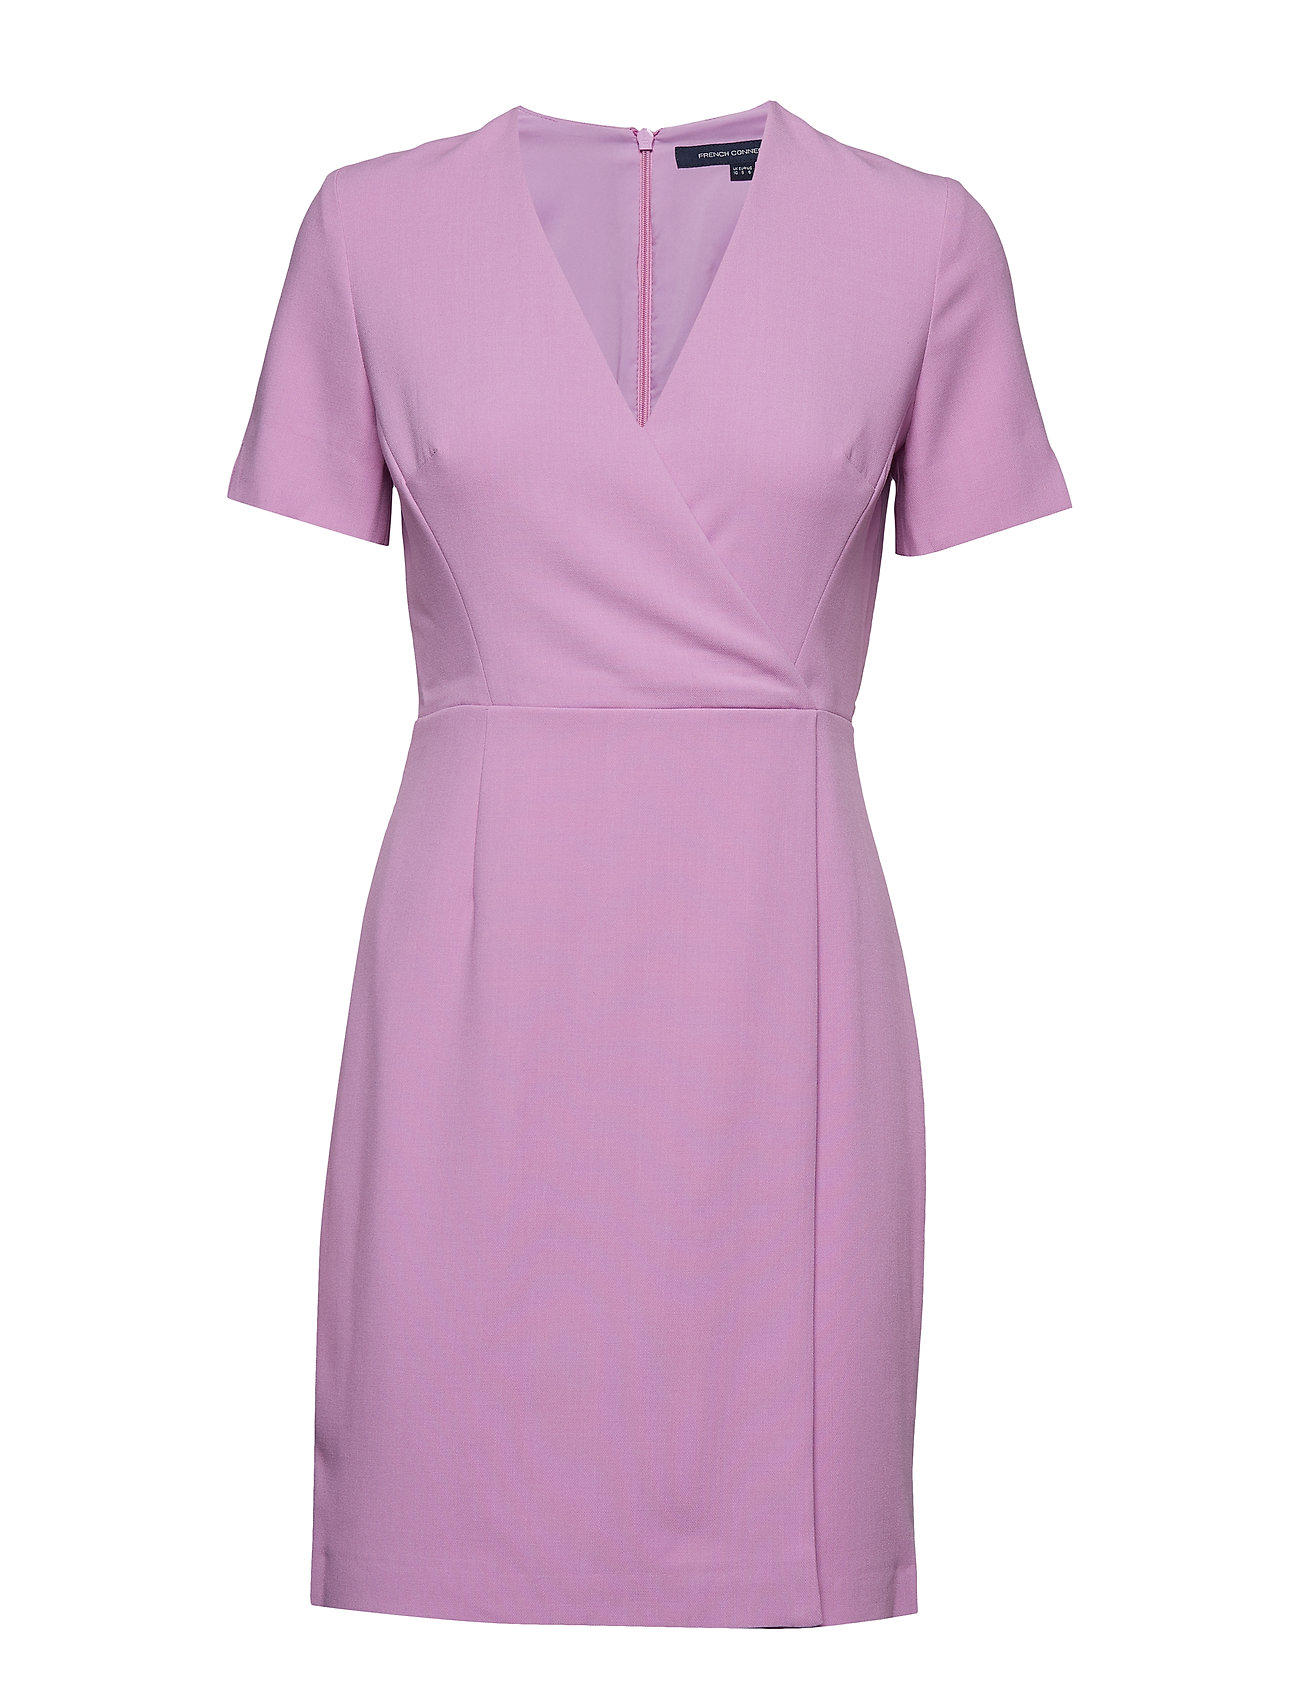 French Connection WHISPER RUTH SHORT SLEEVE WRAP DRESS - KYOTO BLOSSOM